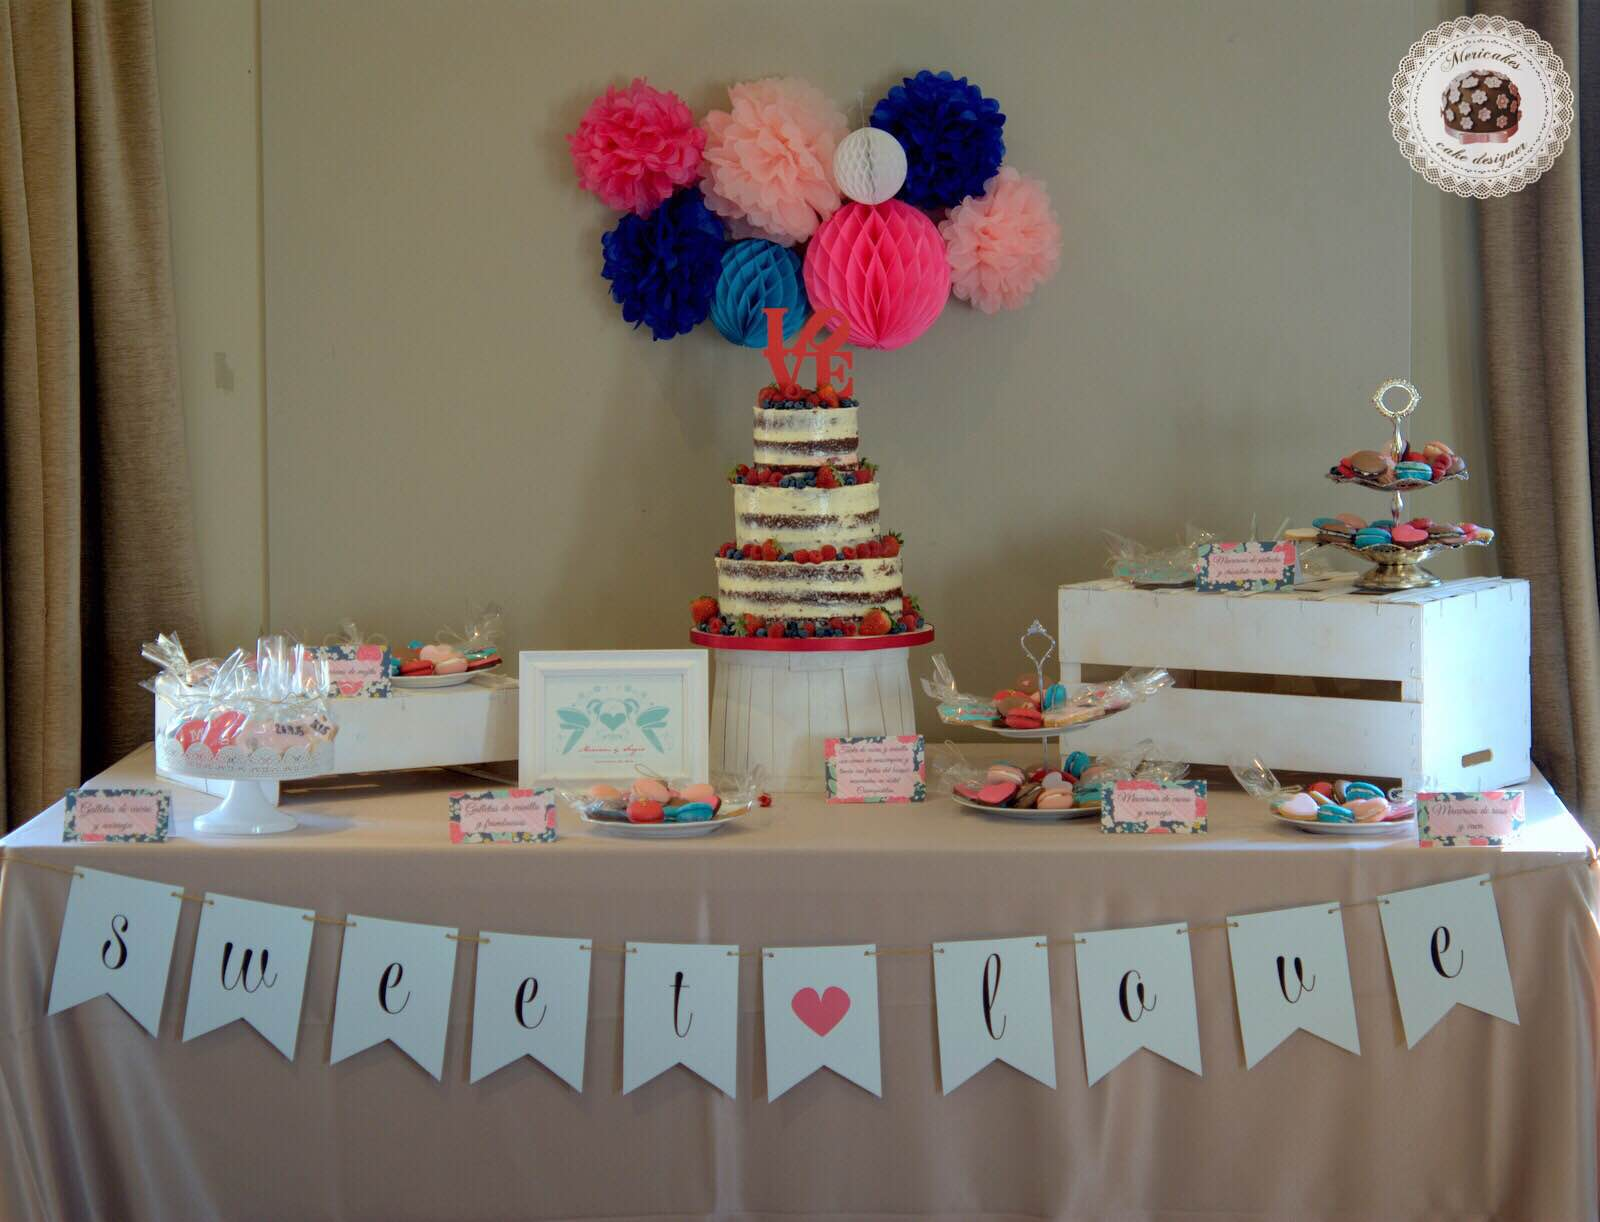 mesa-dulce-sweet-table-wedding-boda-bodas-barcelona-tarta-de-boda-macarons-mericakes-galletas-candy-bar-barcelona-weddings